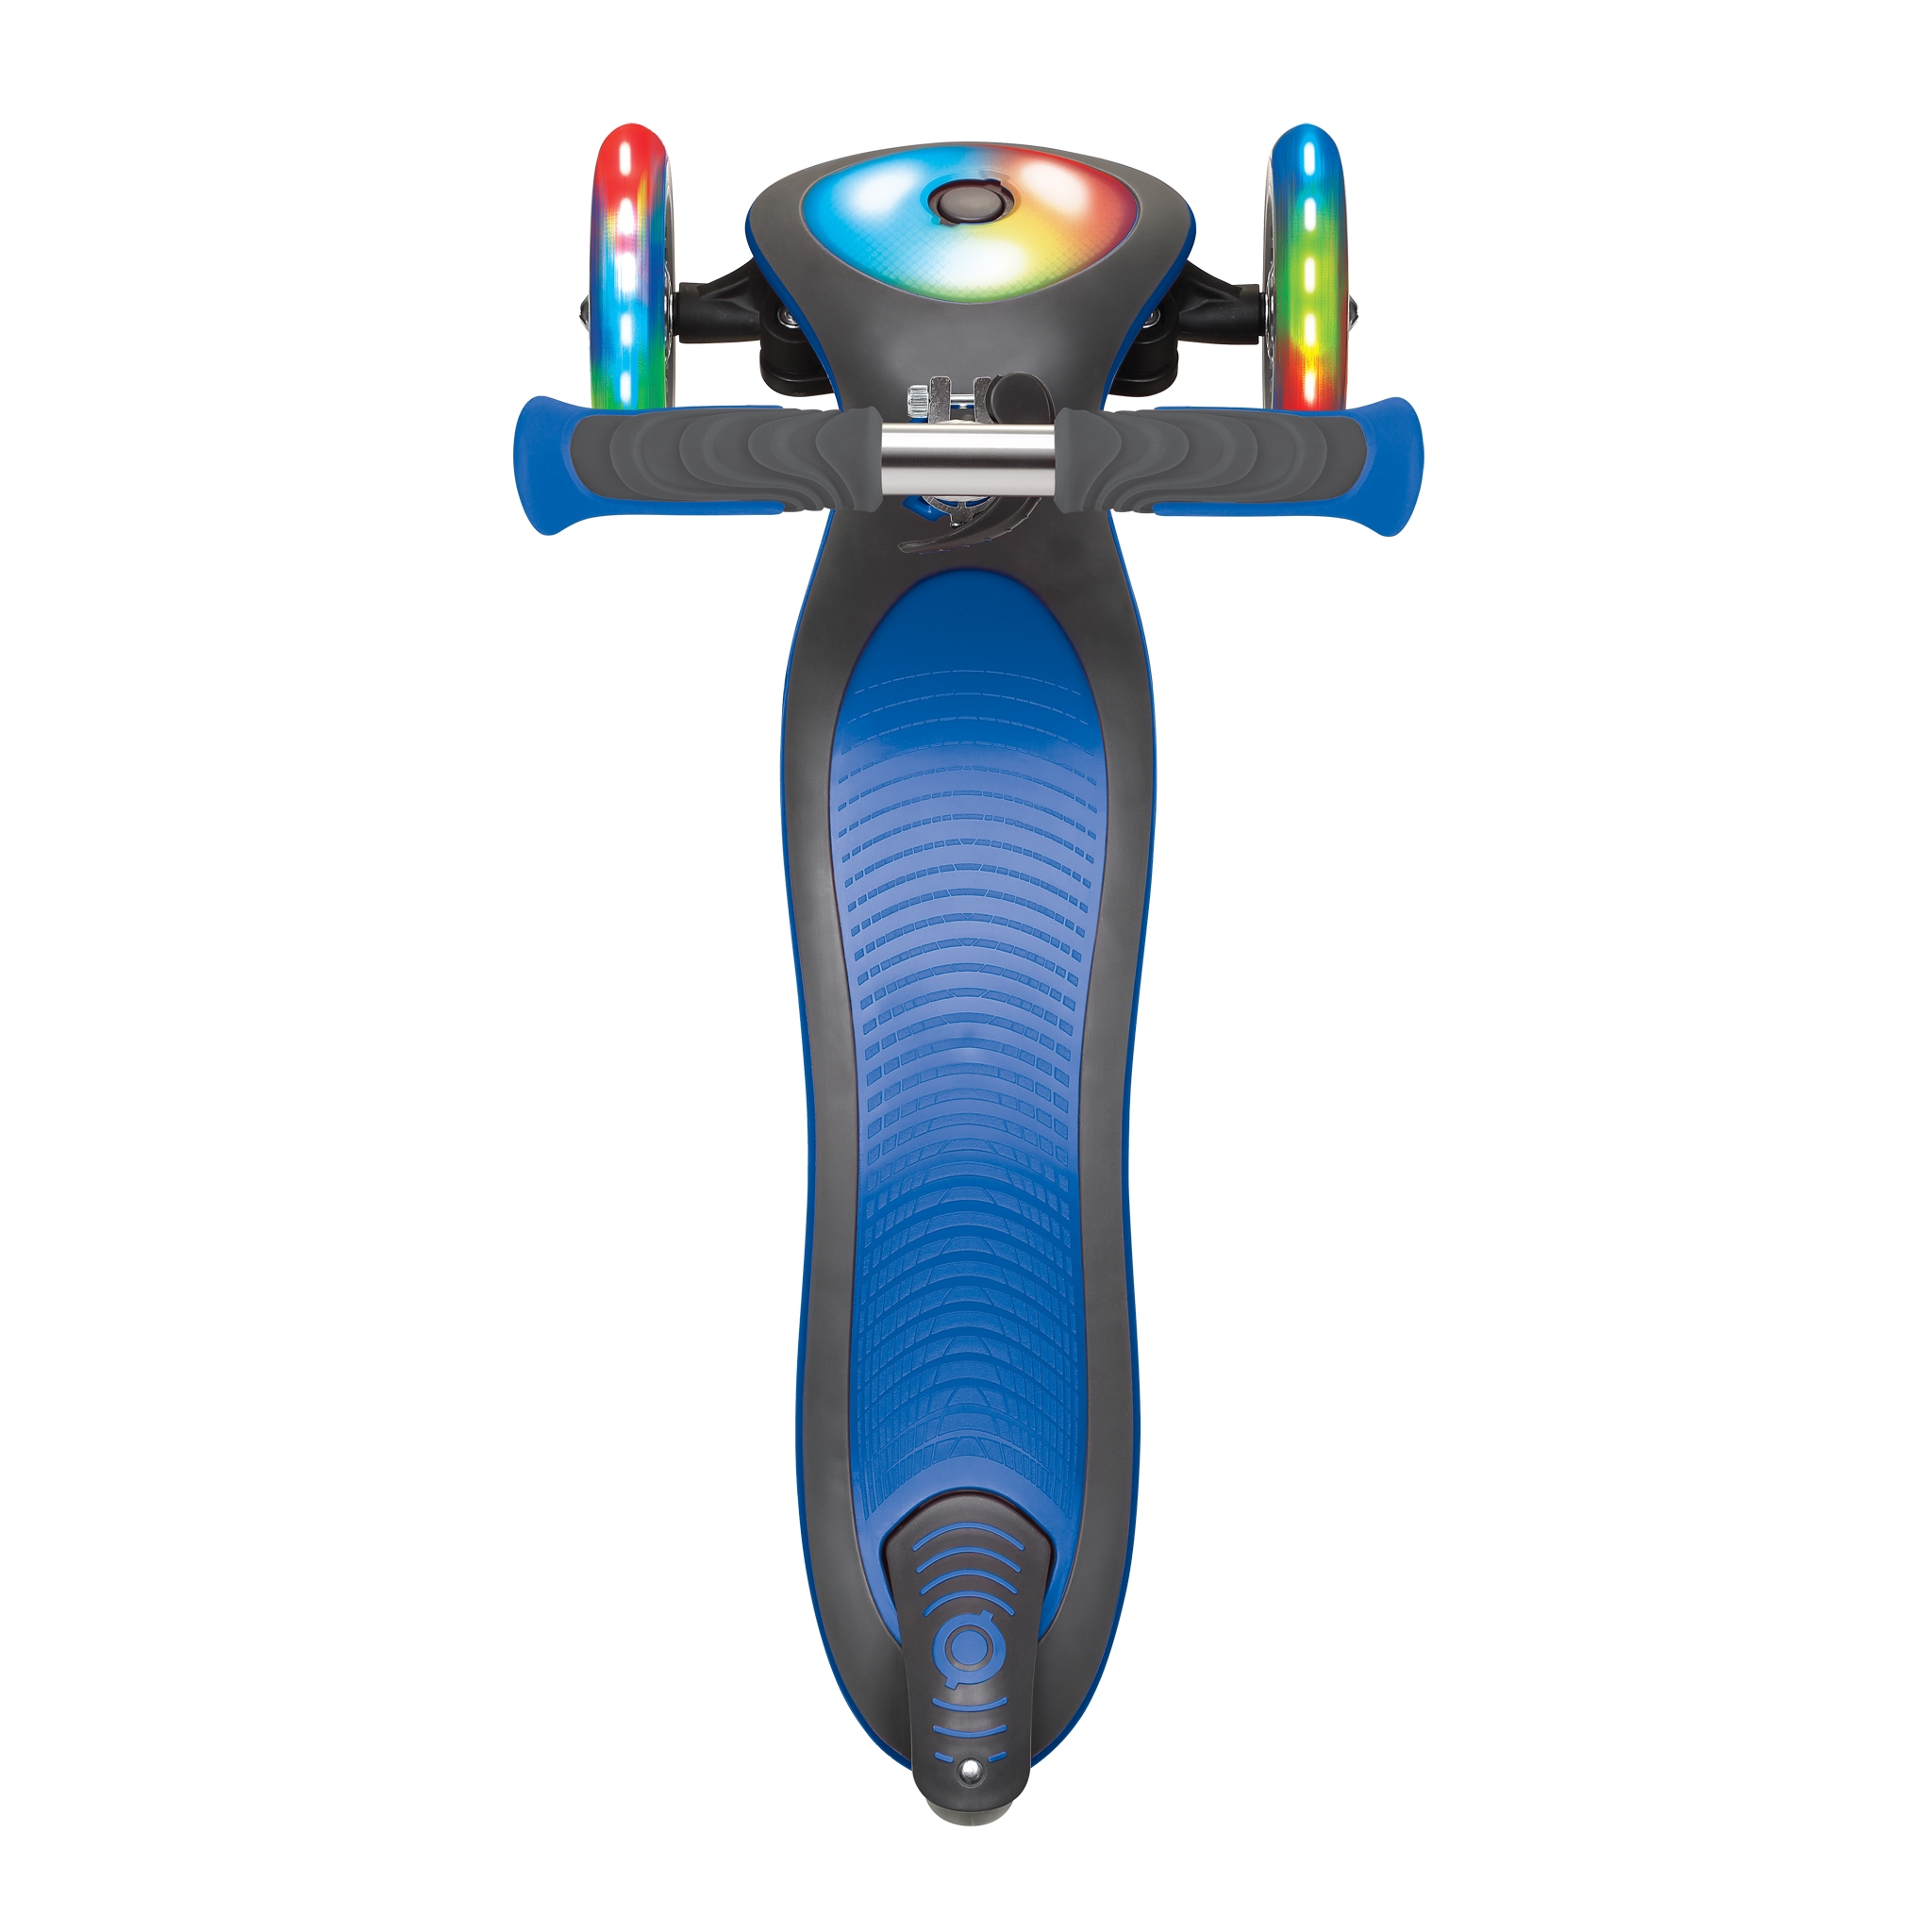 Globber-ELITE-DELUXE-FLASH-LIGHTS-3-wheel-foldable-scooter-with-extra-wide-scooter-deck-navy-blue 3